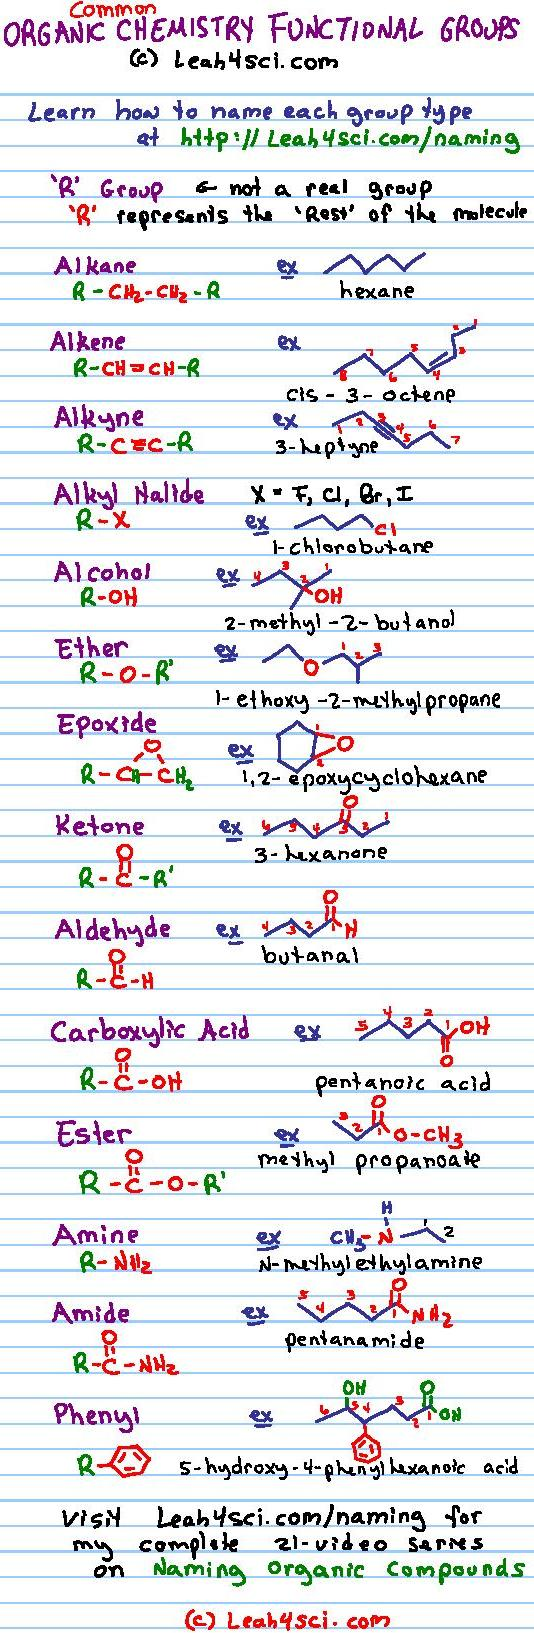 organic chemistry functional groups guide